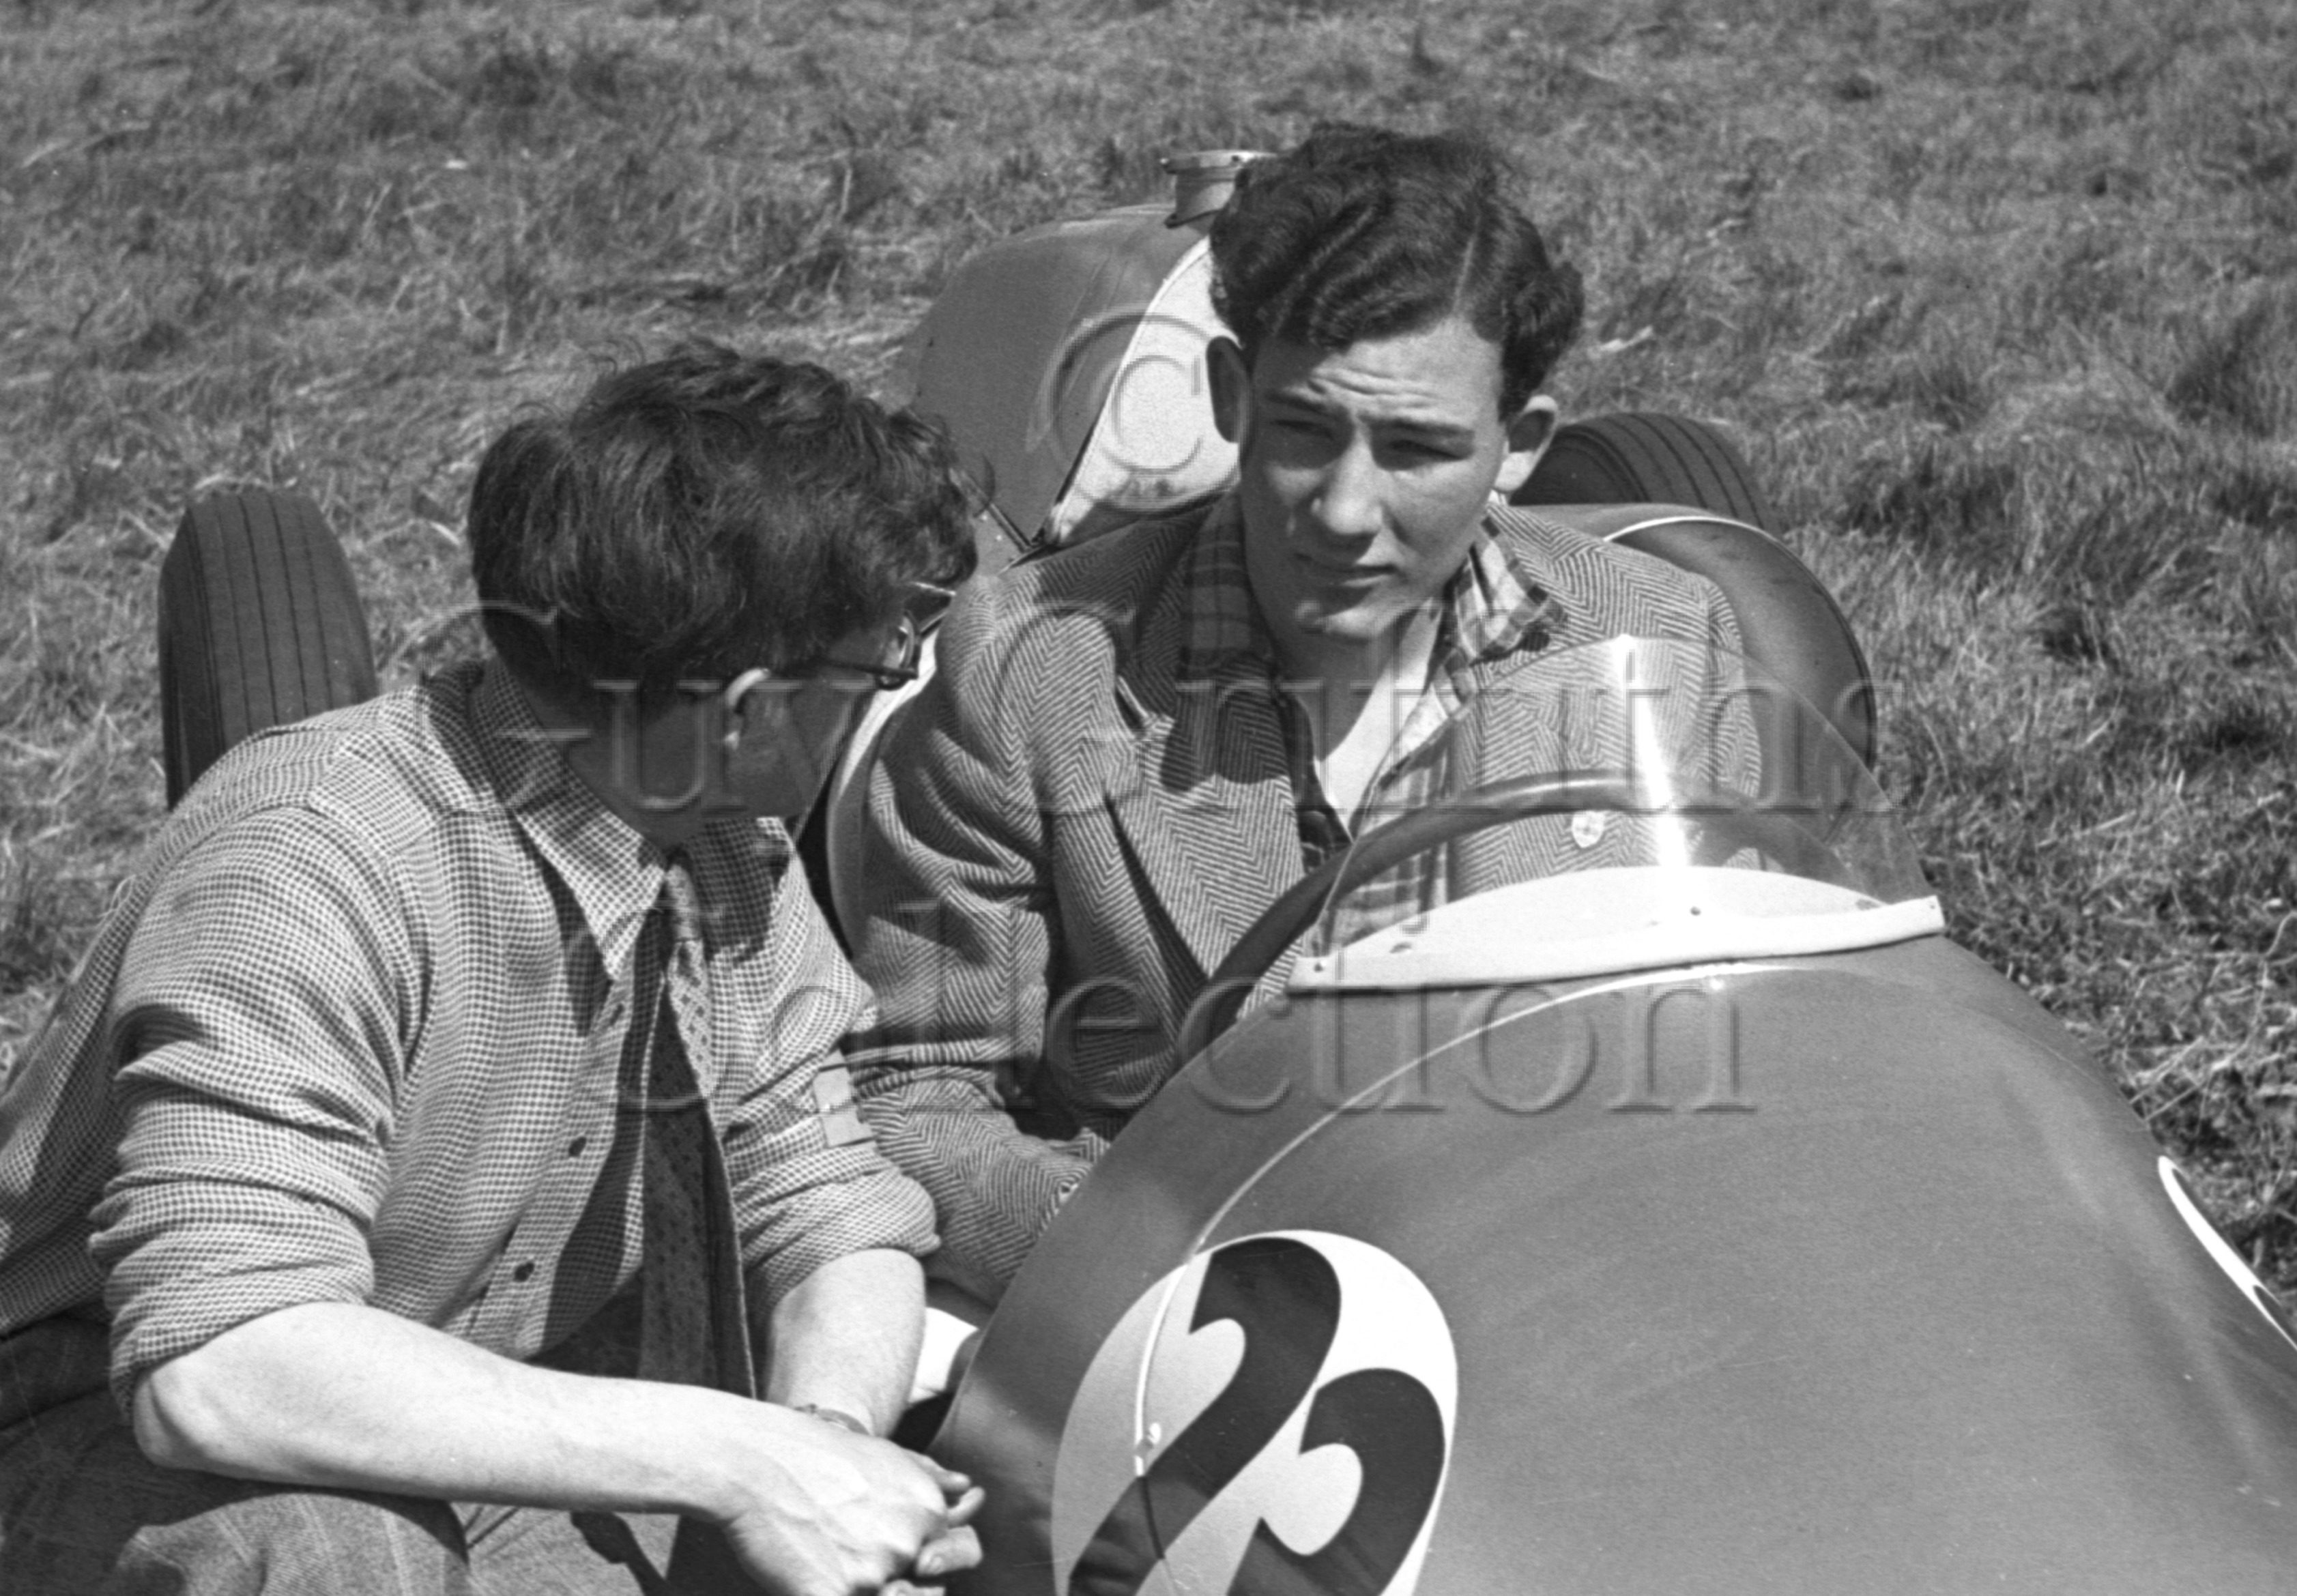 14-104–S-Moss–Cooper-500–Silverstone–14-05-1949.jpg - The Guy Griffiths Collection